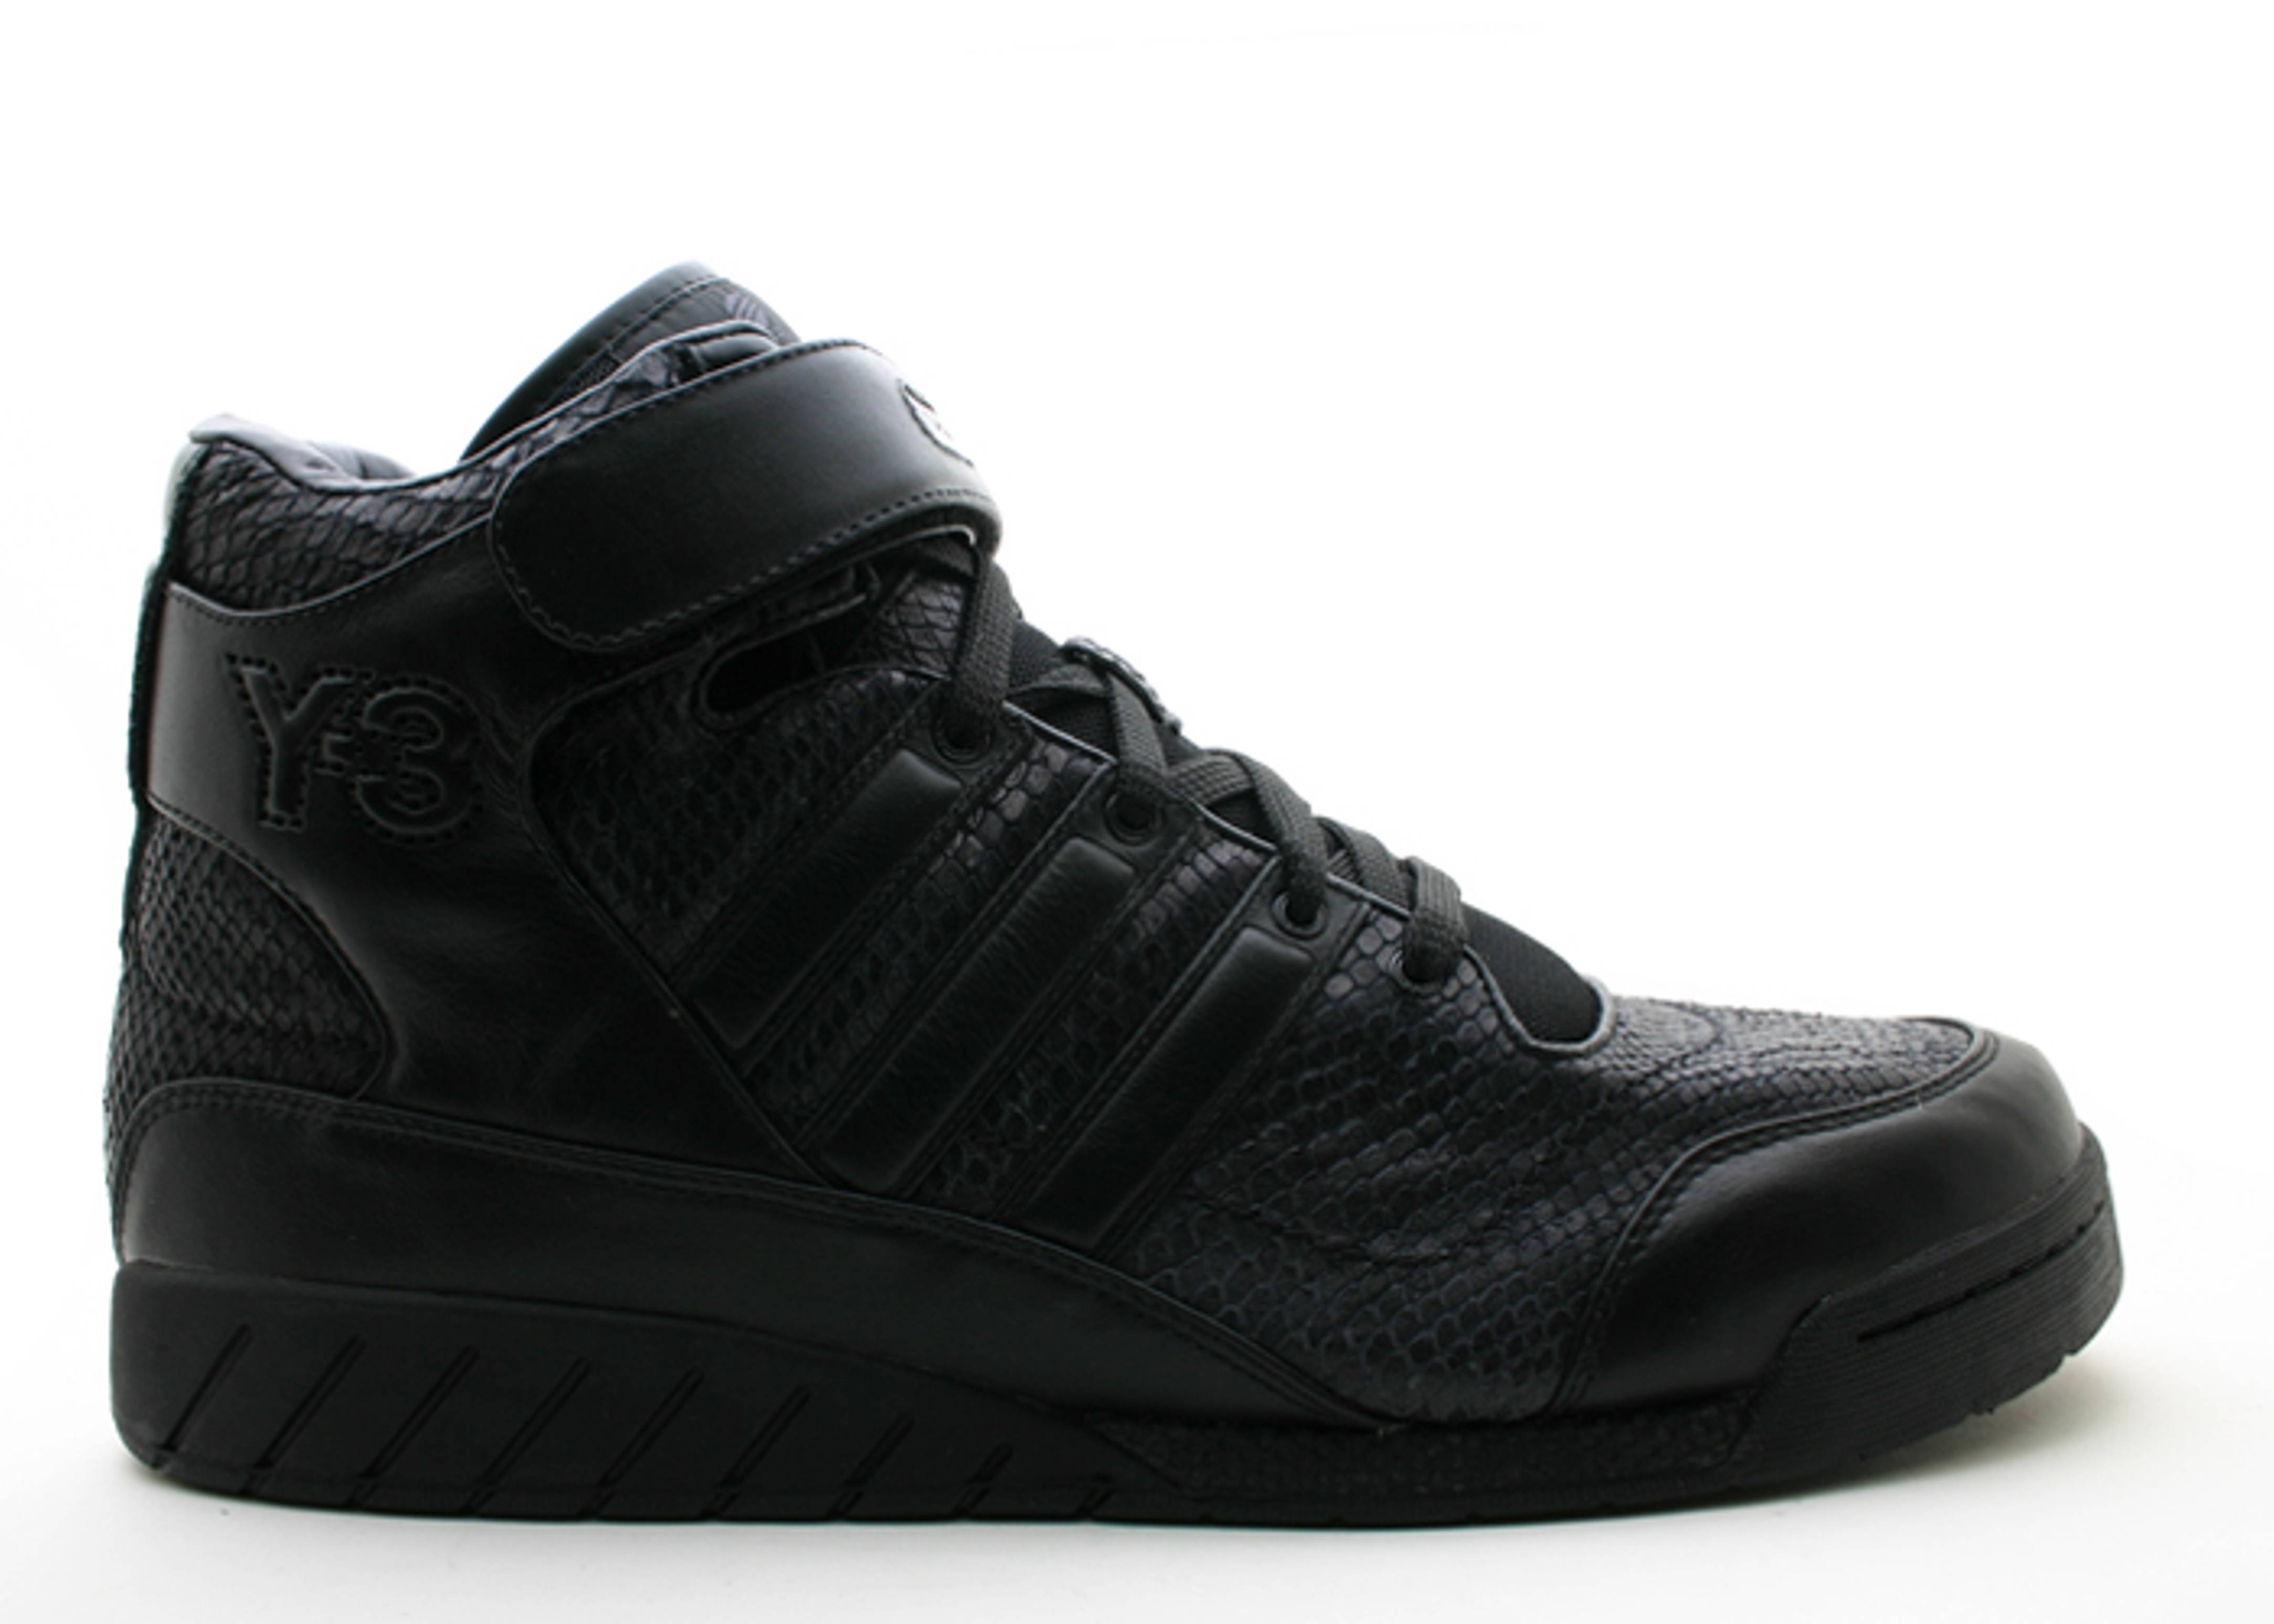 y-3 bball mid